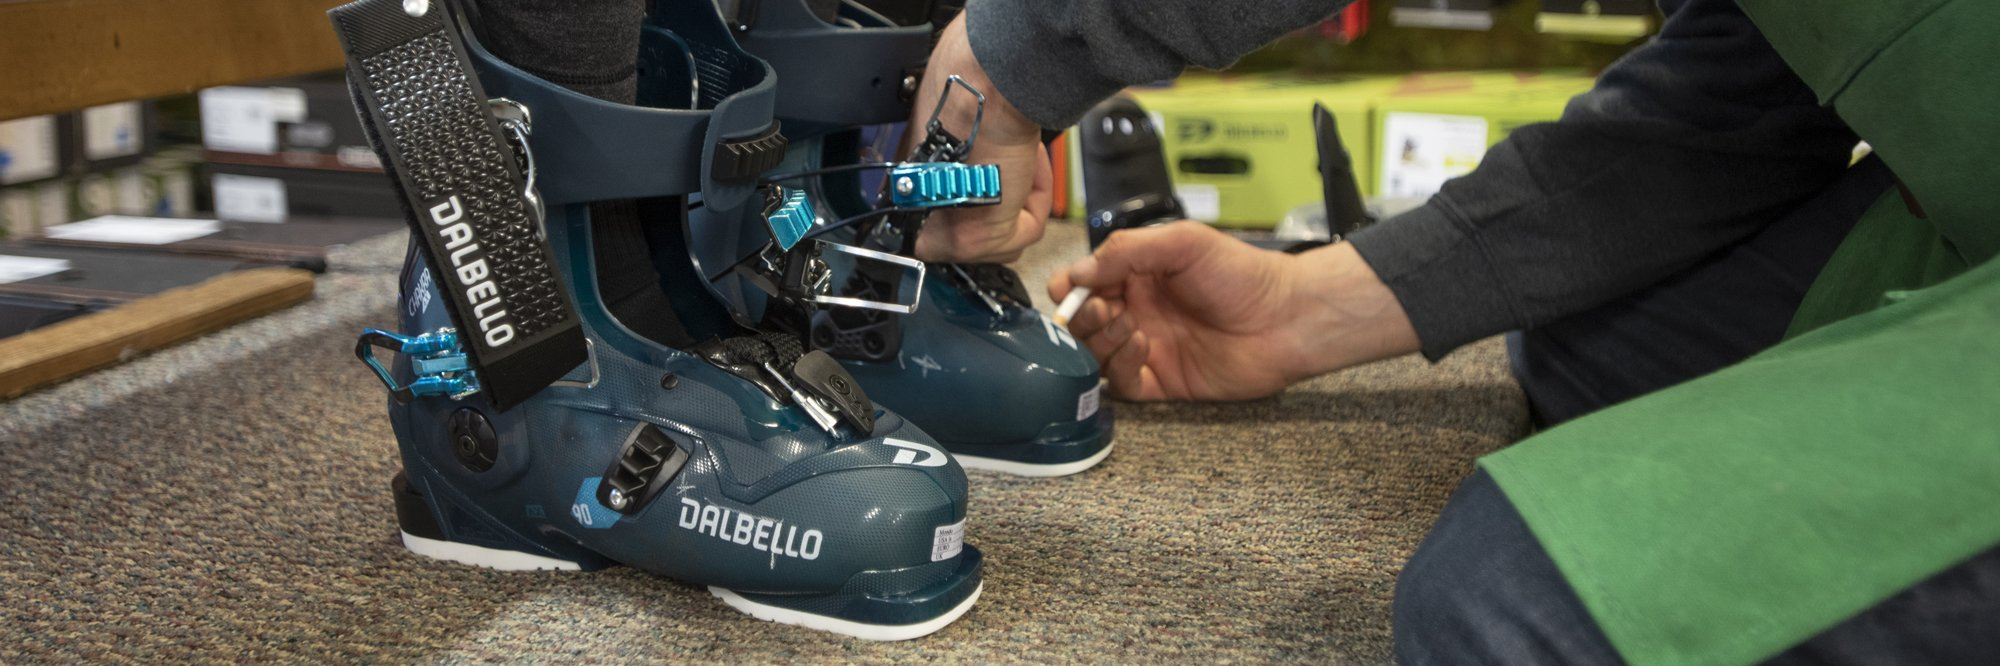 Custom Boot Fitting at West Seattle Ski and Snowboard Shop